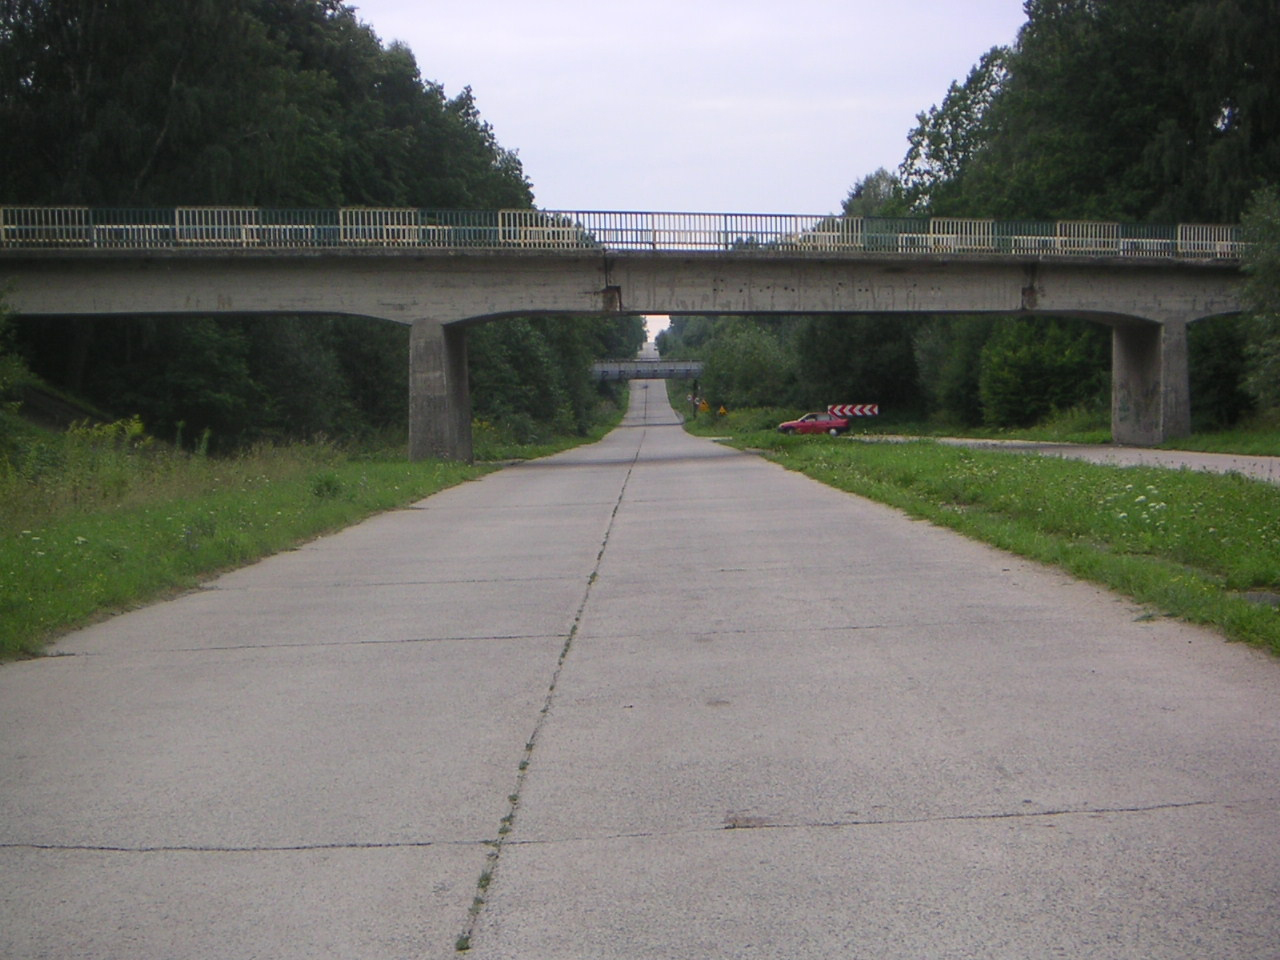 Berlinka_%28Highway%29_2006.jpg